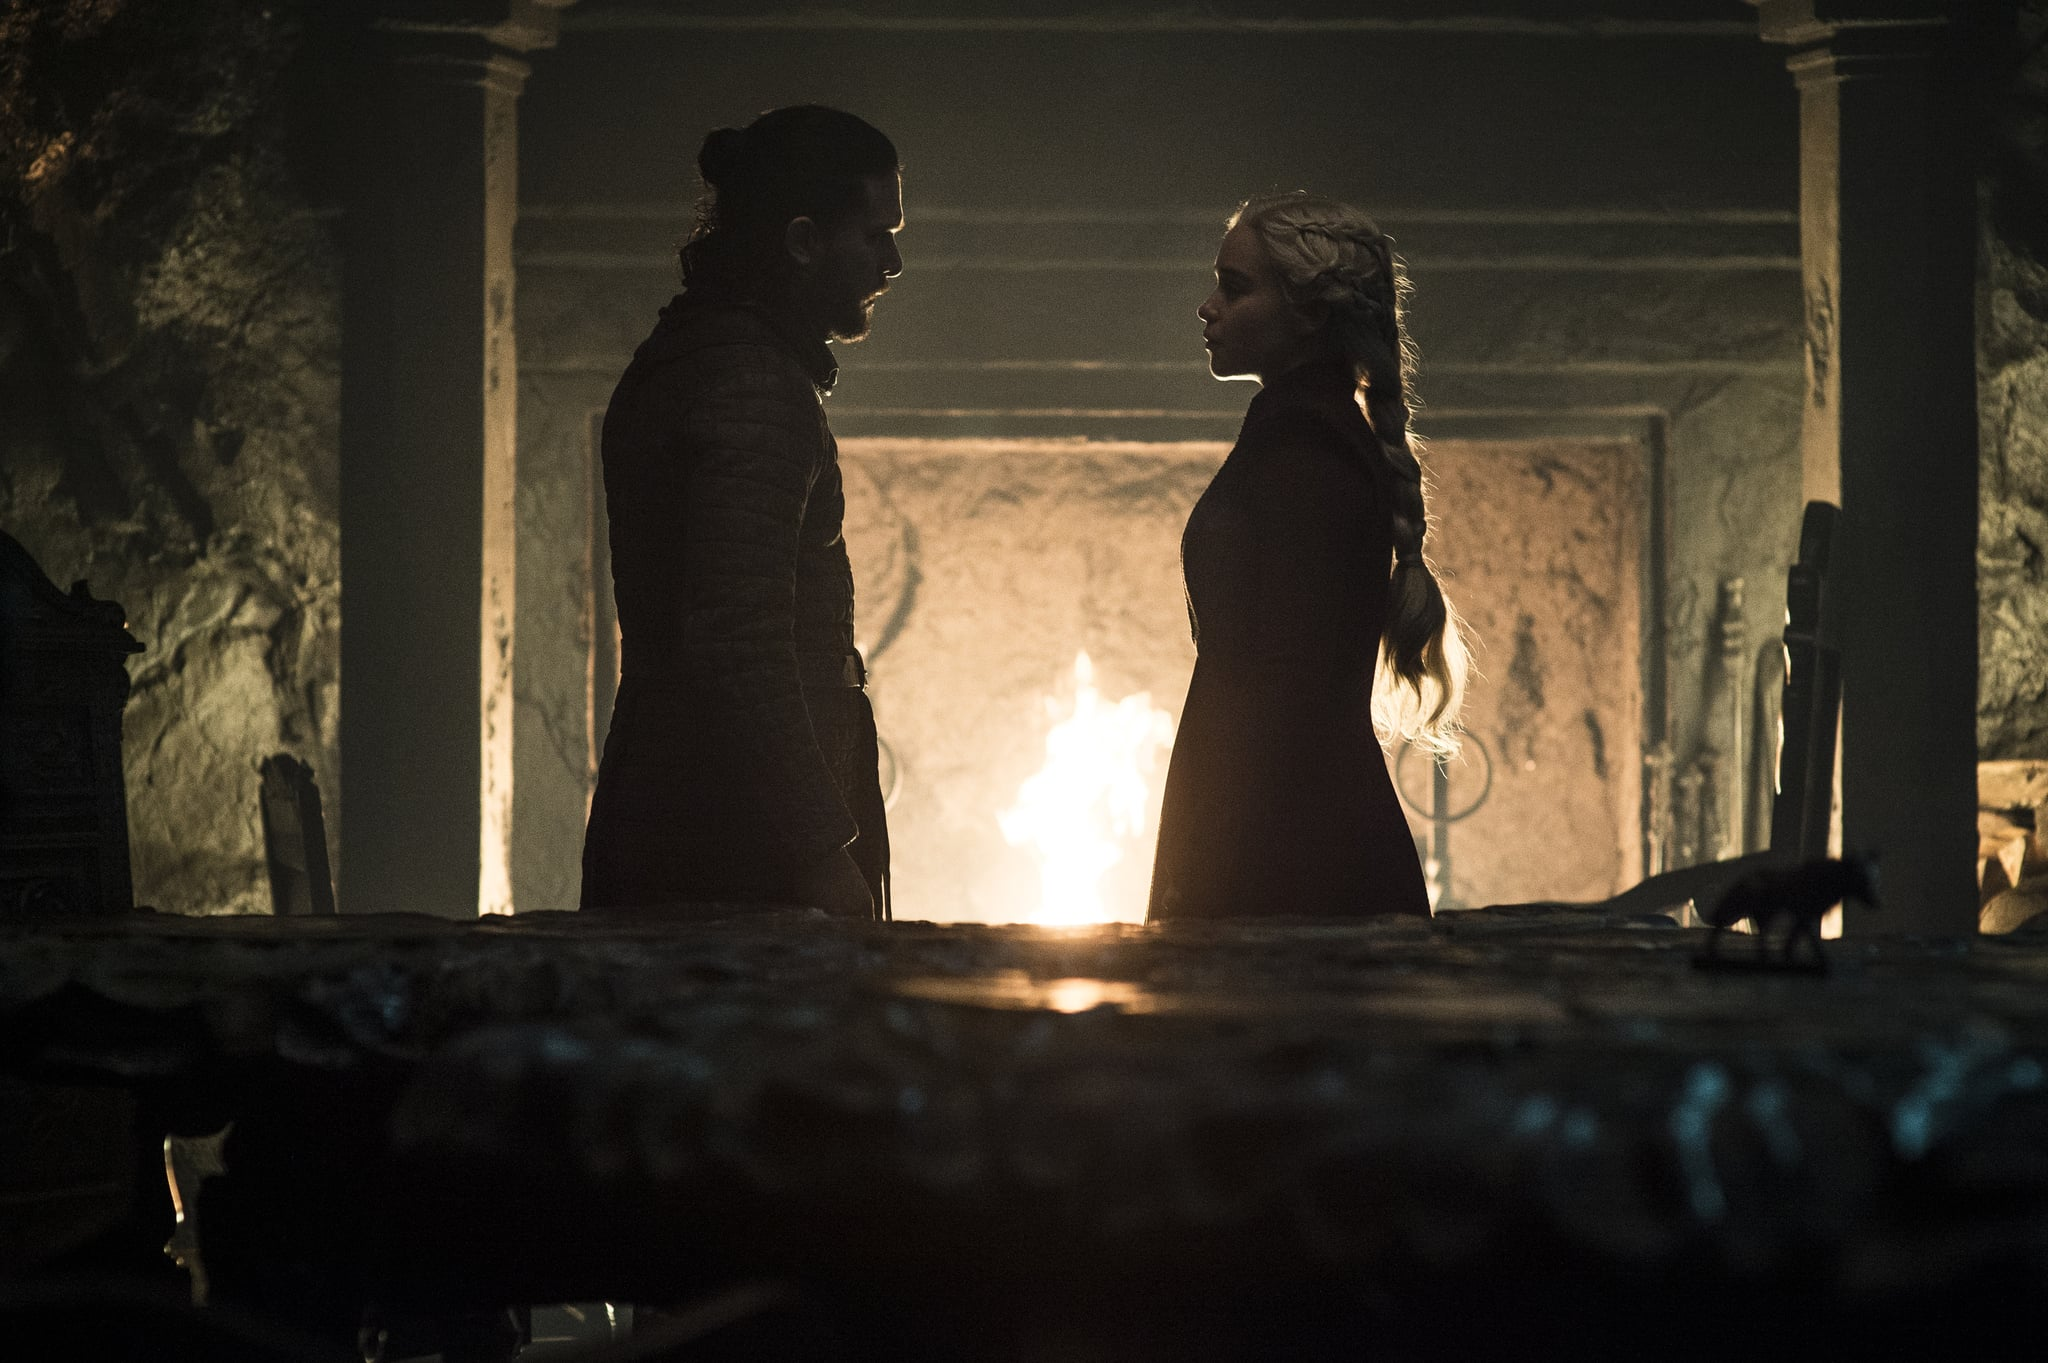 Jon Killing Daenerys Means He's Azor Ahai on Game of Thrones | POPSUGAR Entertainment UK